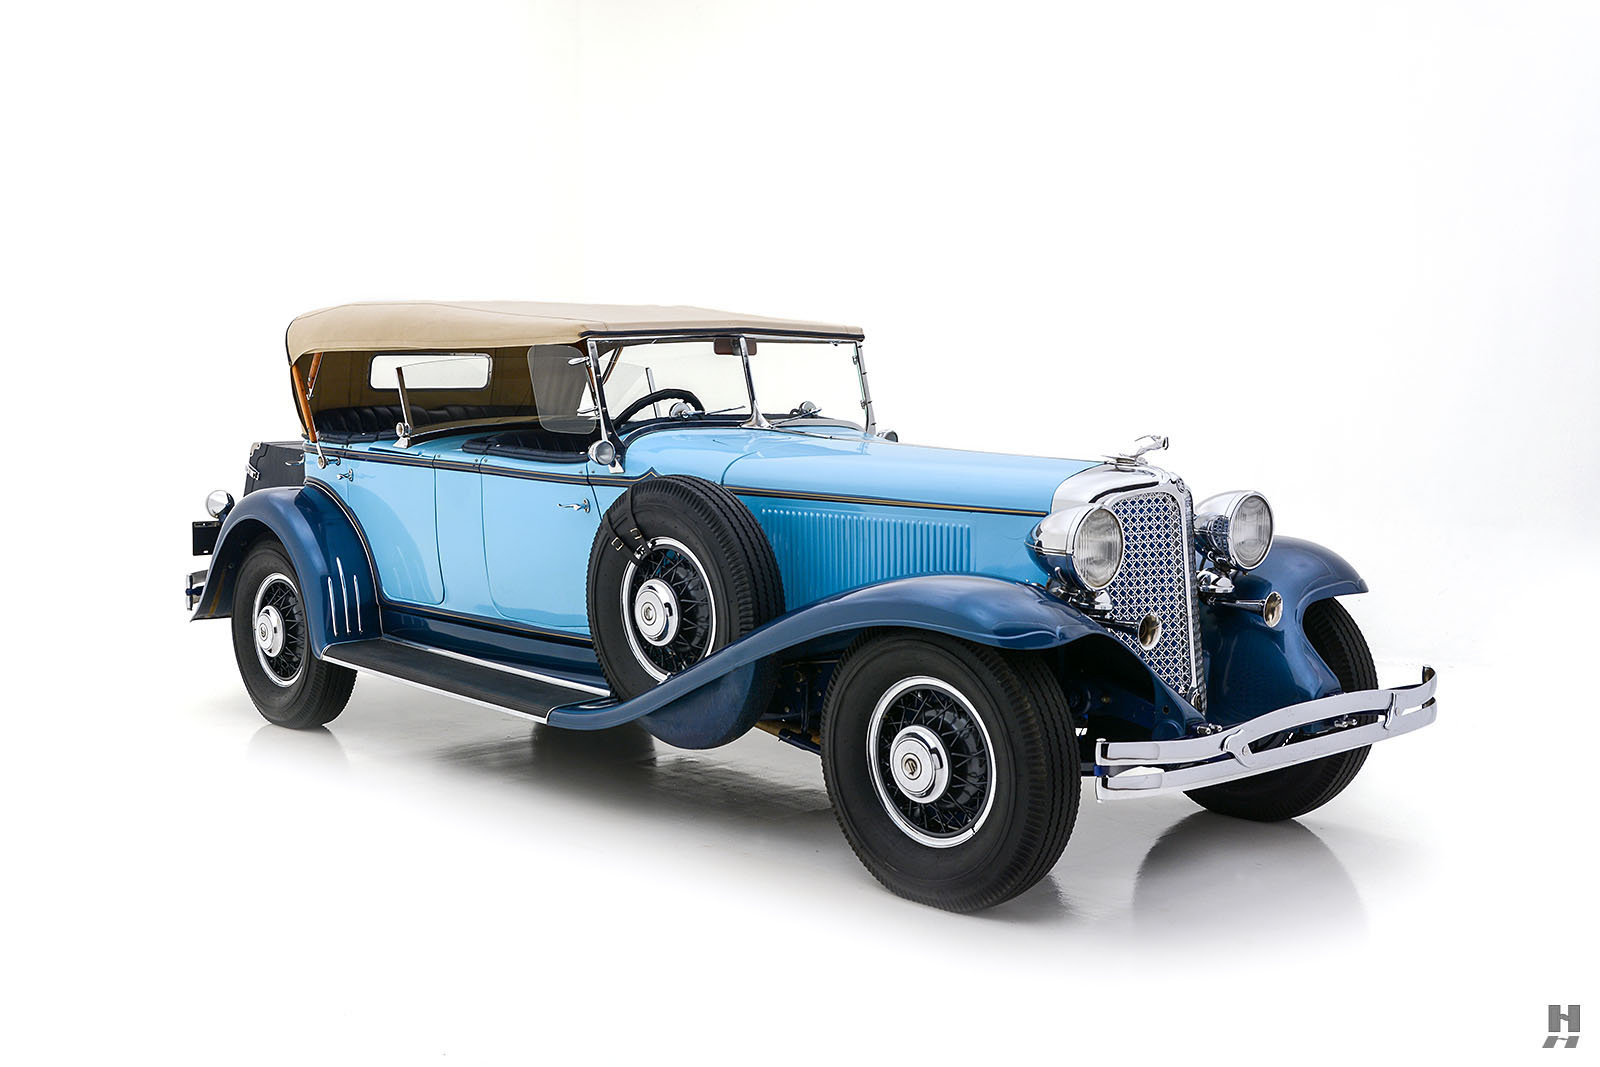 1931 CHRYSLER CG IMPERIAL DUAL COWL PHAETON For Sale (picture 2 of 6)